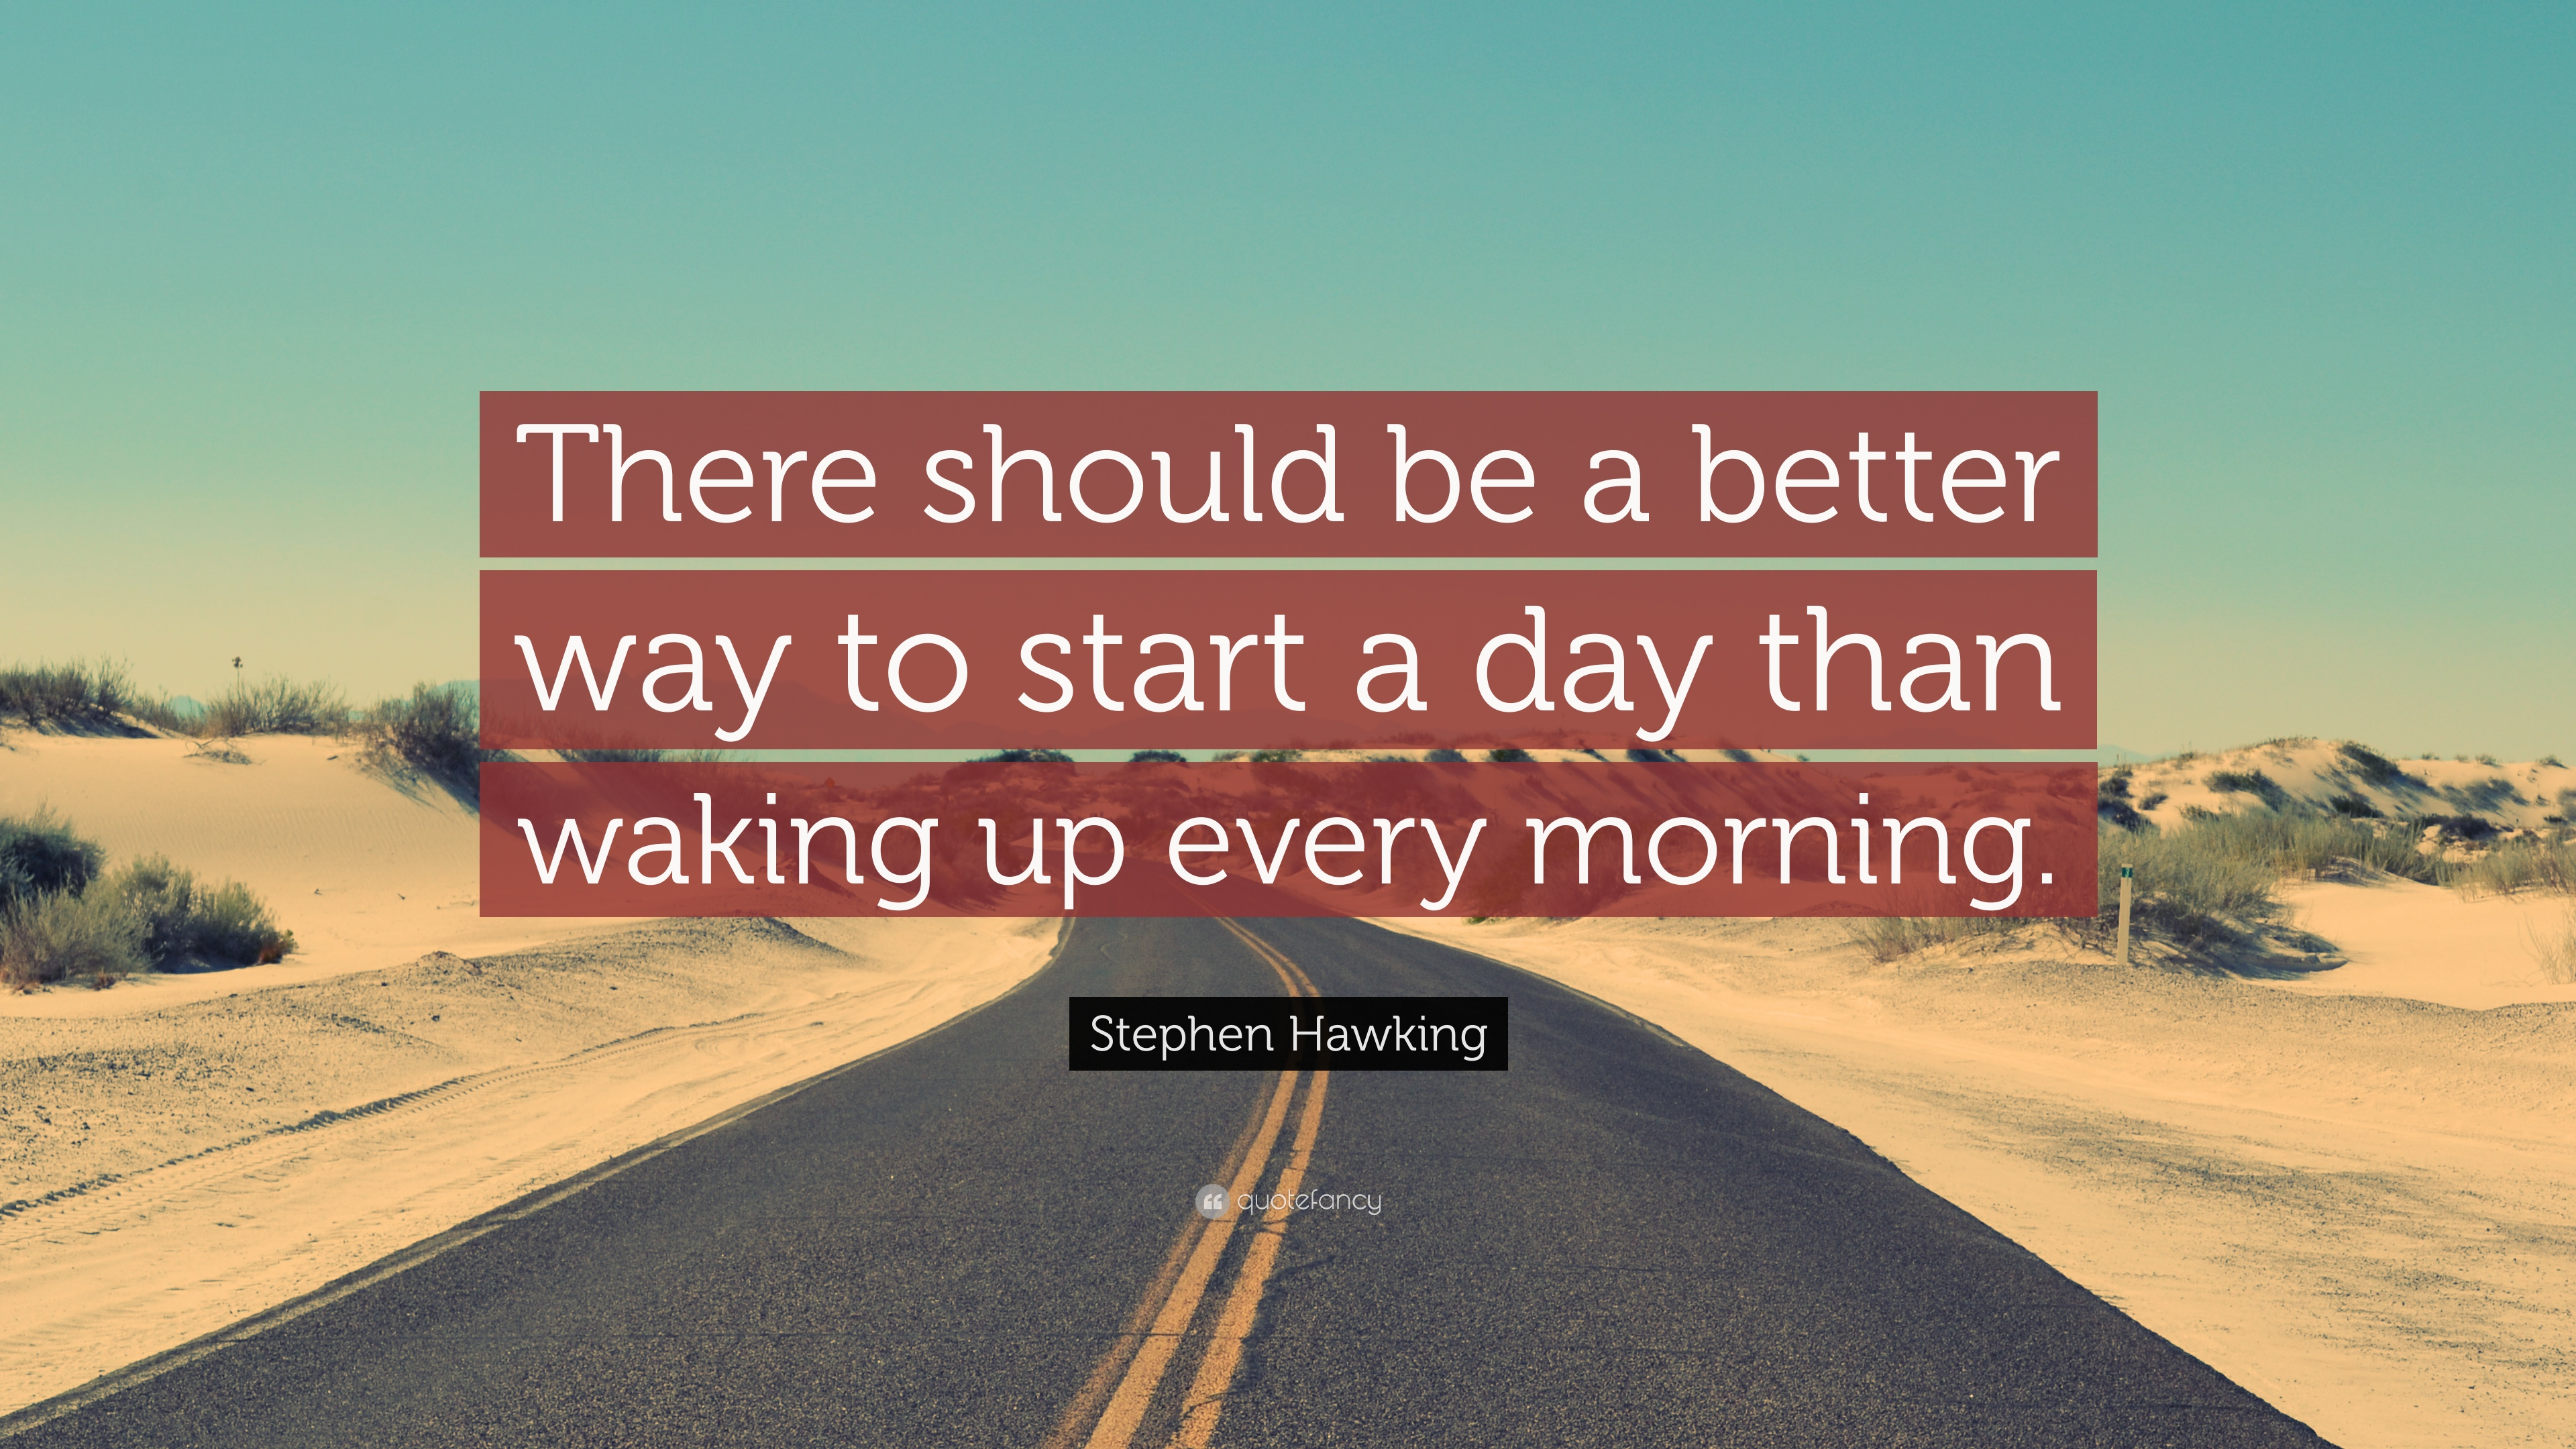 Stephen Hawking Quote There Should Be A Better Way To Start A Day